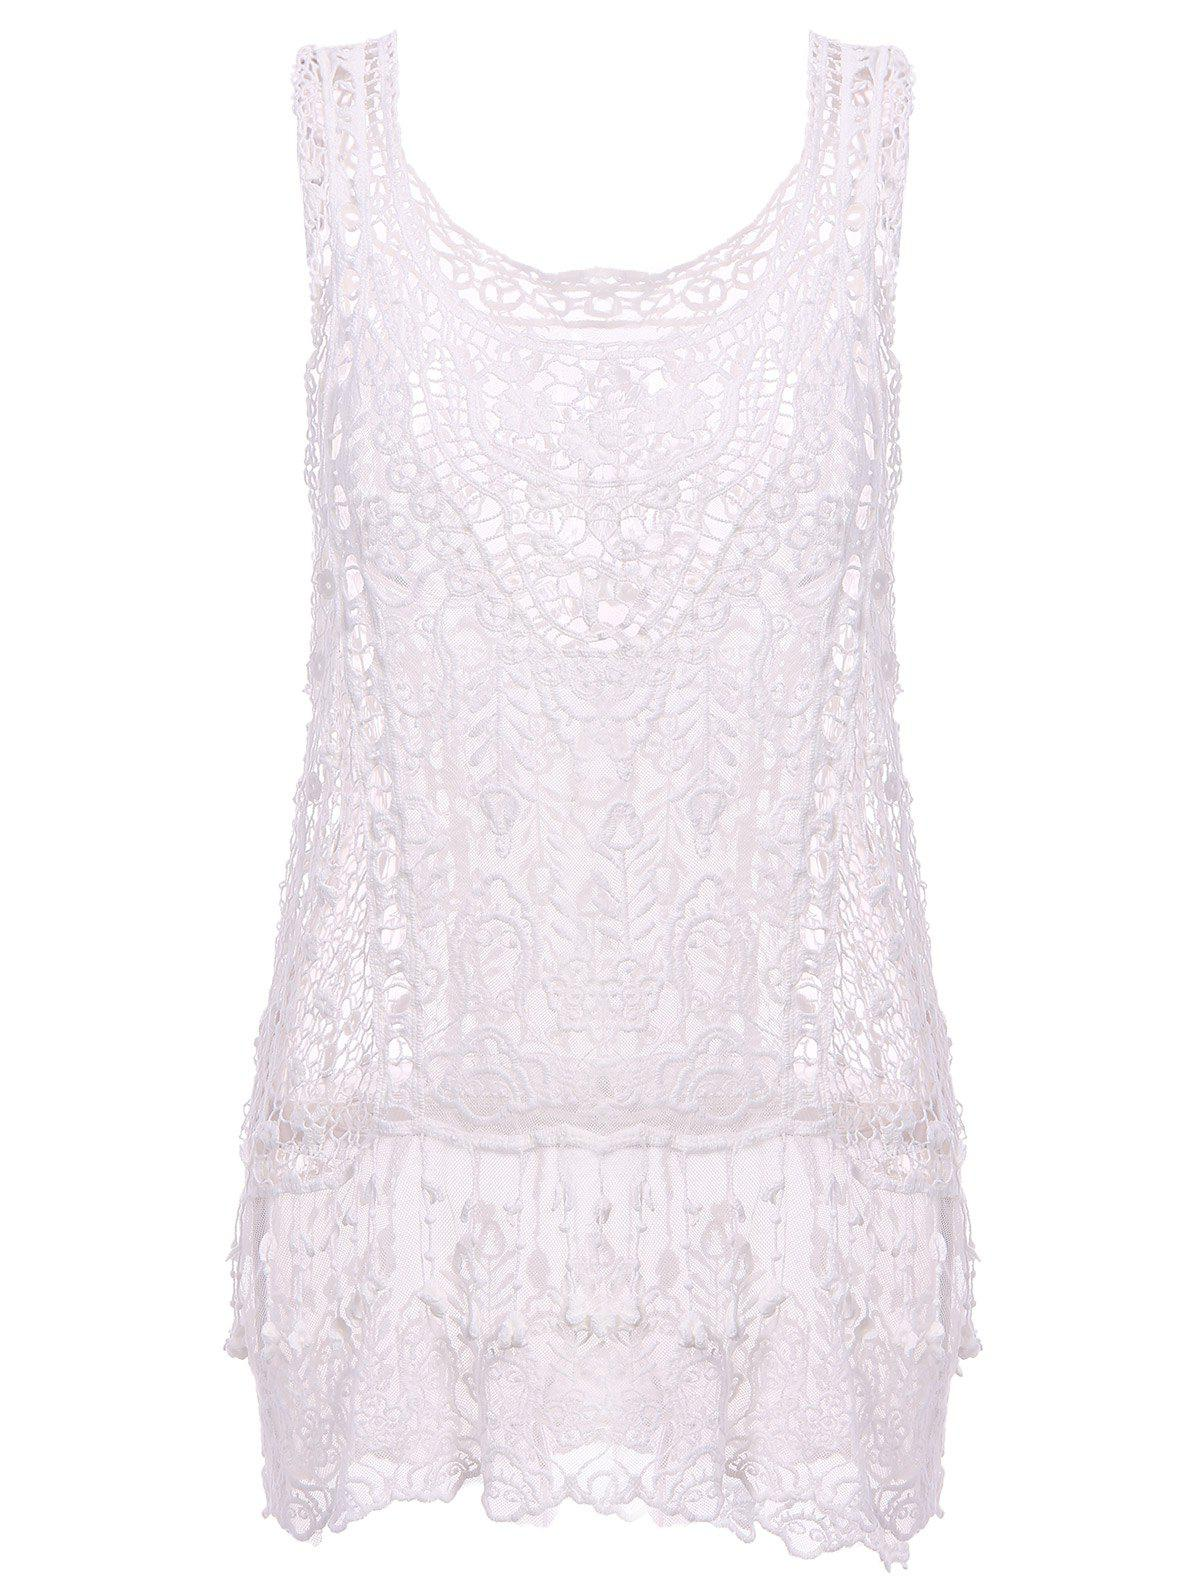 Fashionable Women's U Neck Sleeveless Crochet Cover-Up - WHITE ONE SIZE(FIT SIZE XS TO M)